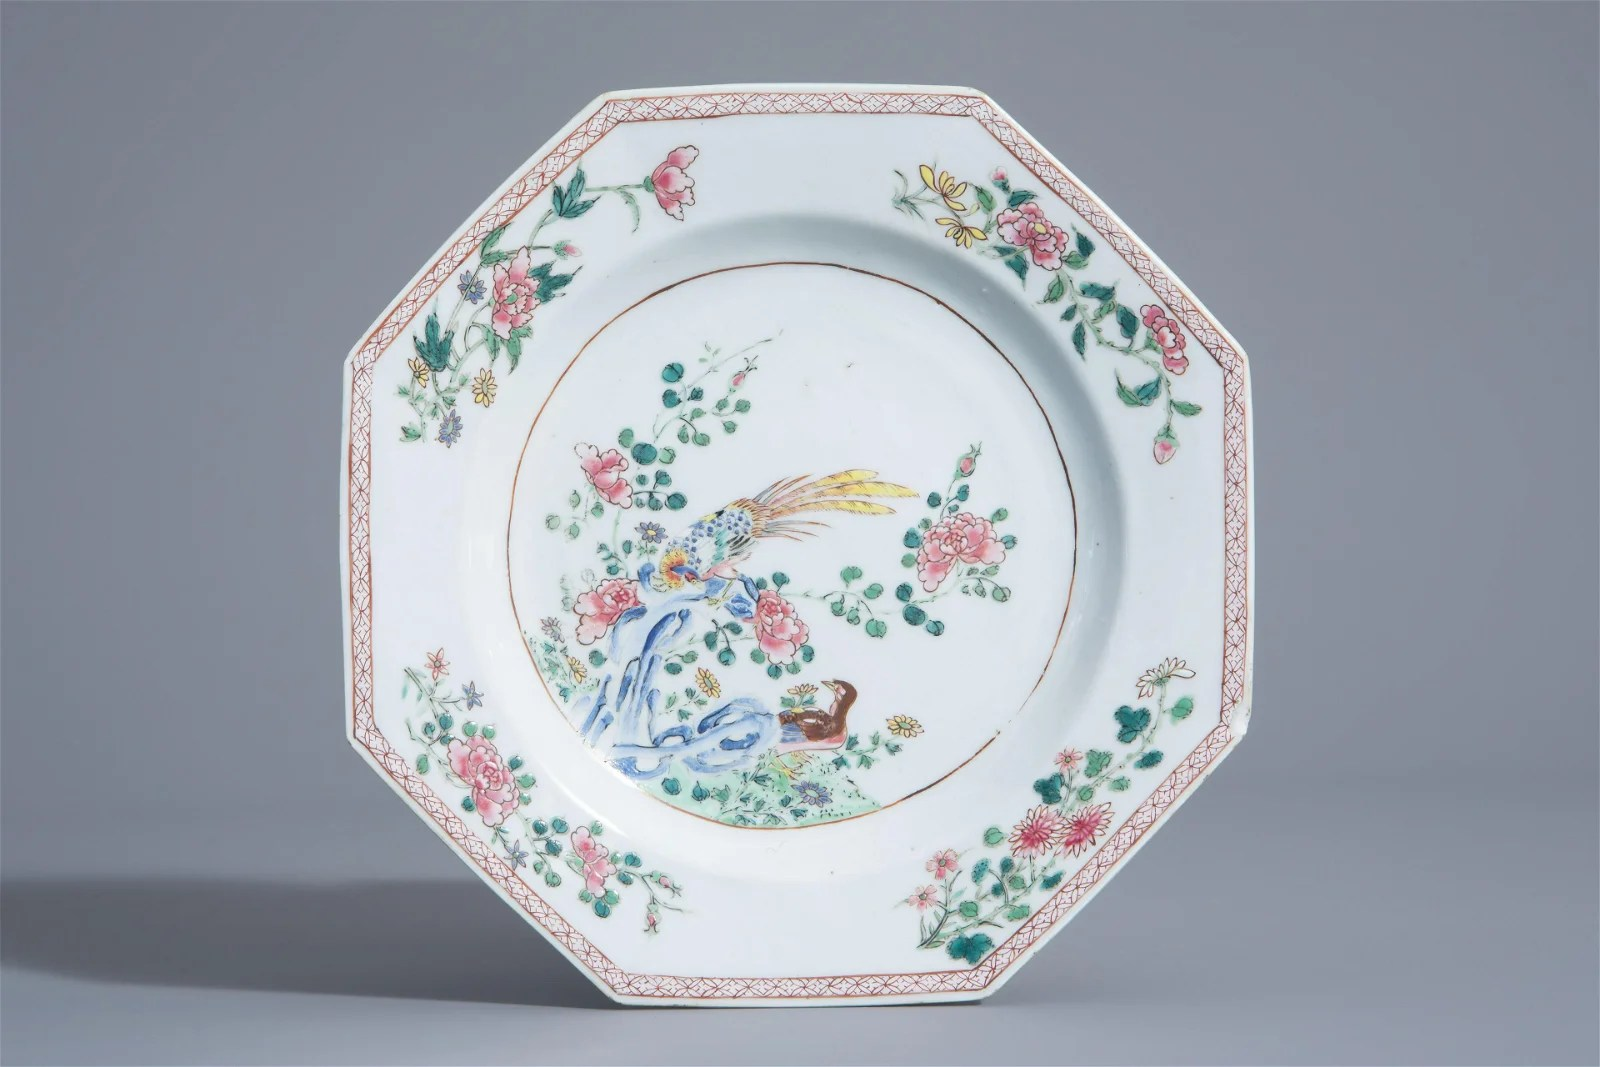 An octagonal Chinese famille rose plate with birds